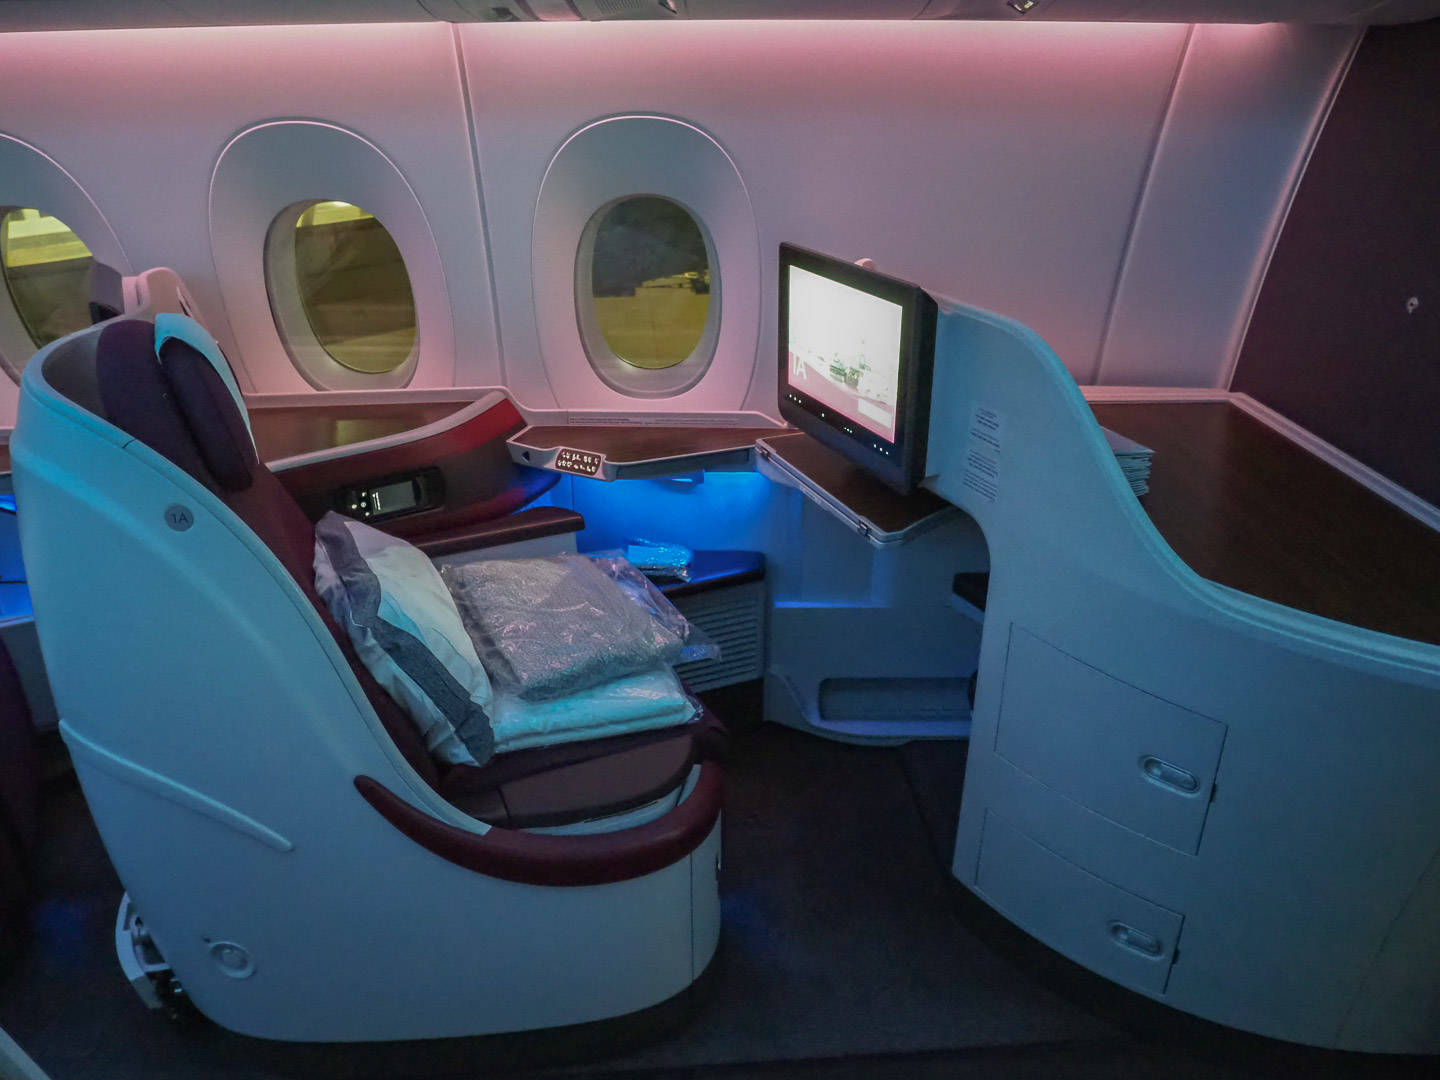 QR J A350 2 - REVIEW - Qatar Airways : Business Class - A350 - Tokyo (HND) to Doha (DOH)